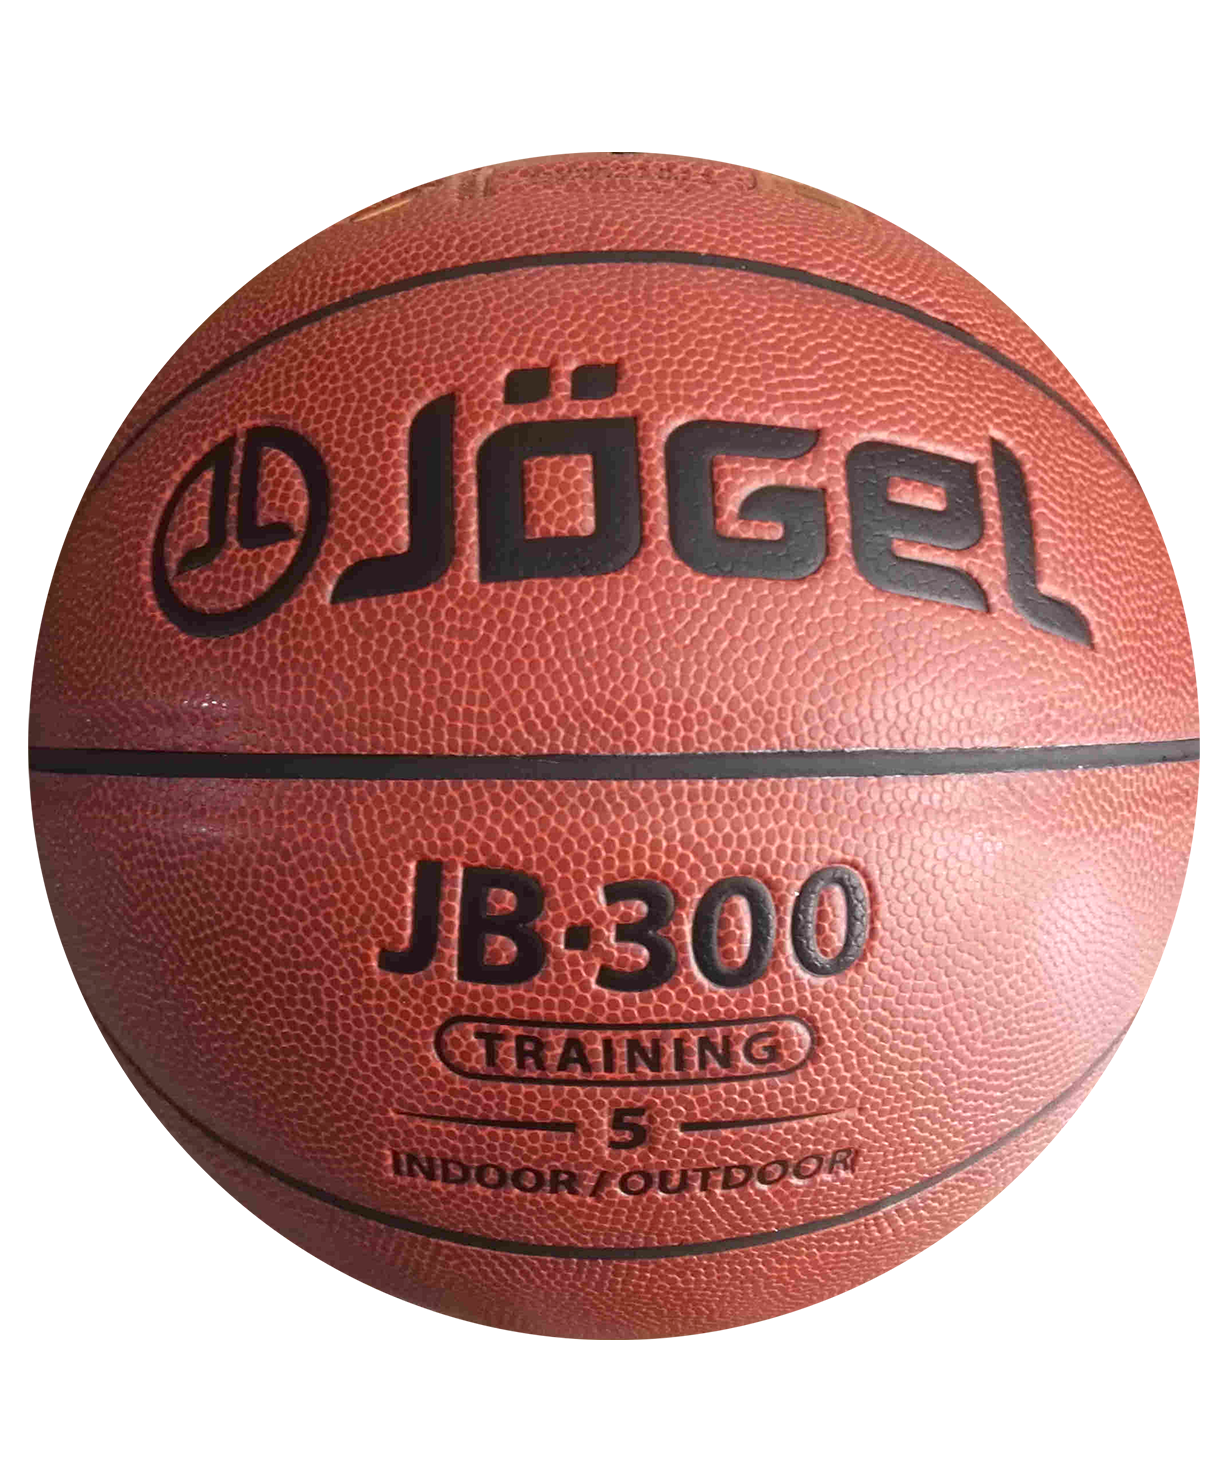 myach-basketbolnyj-jb-300-5